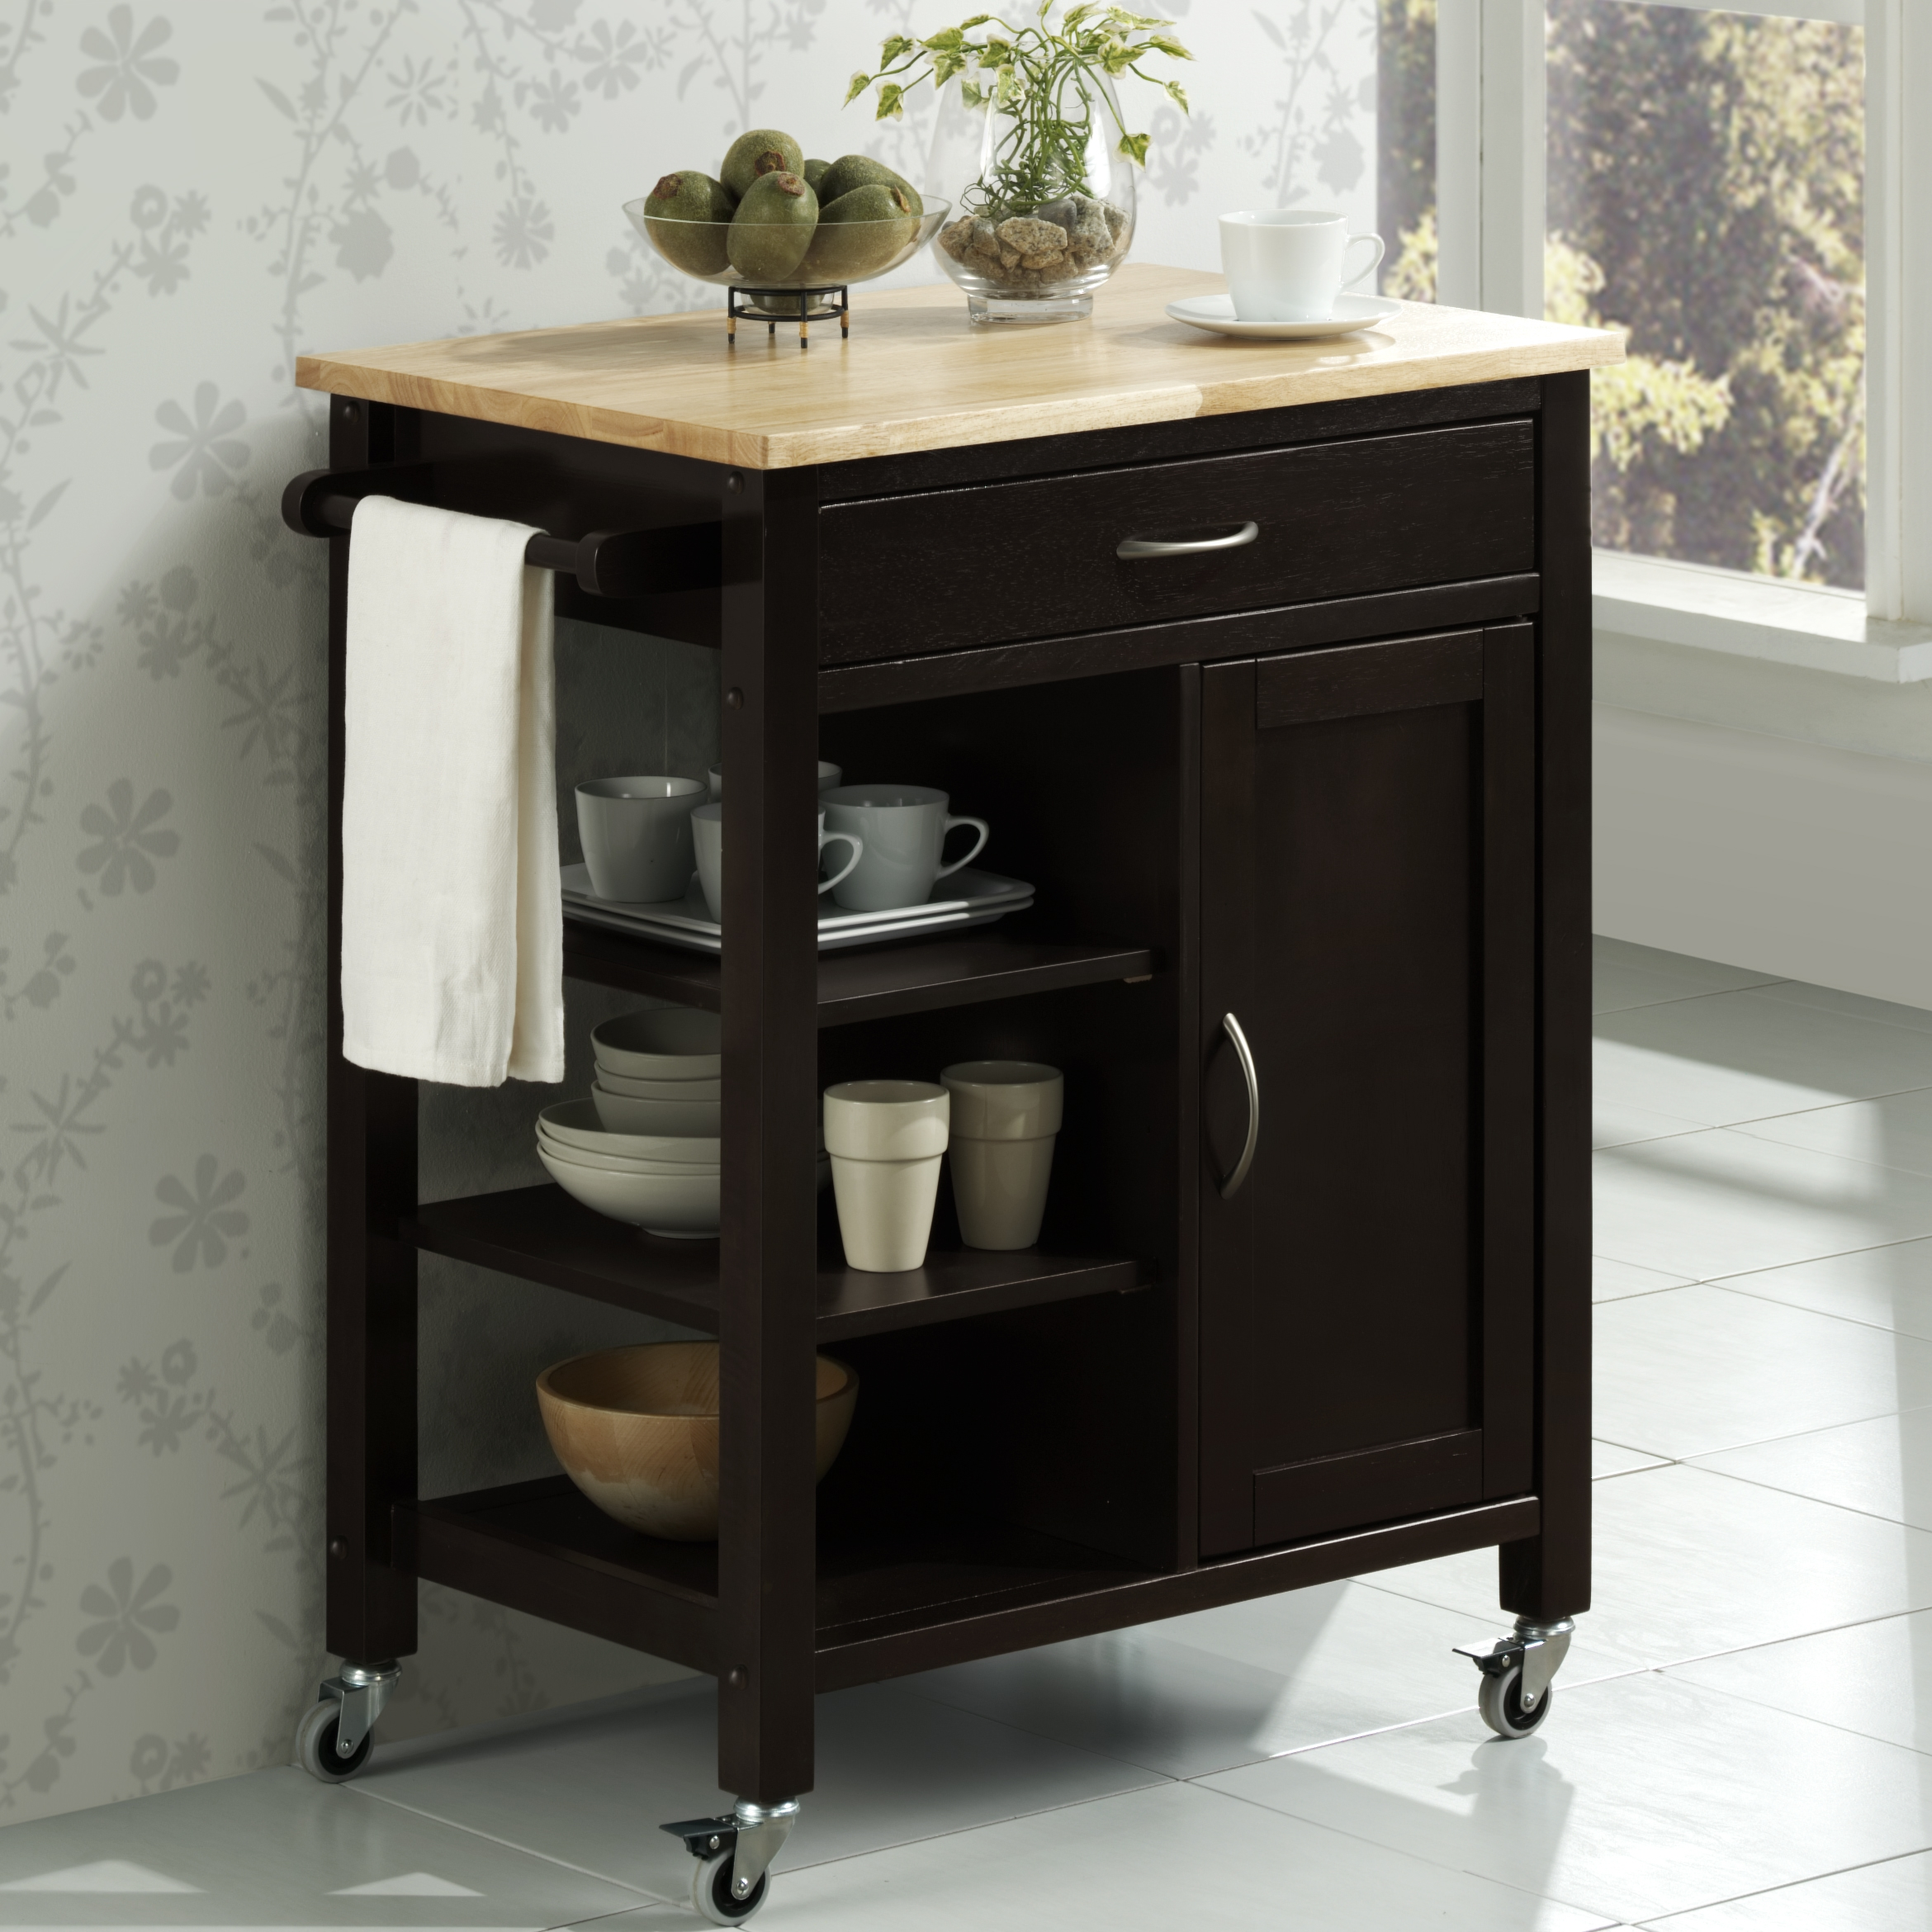 edmonton kitchen cart black walmart com